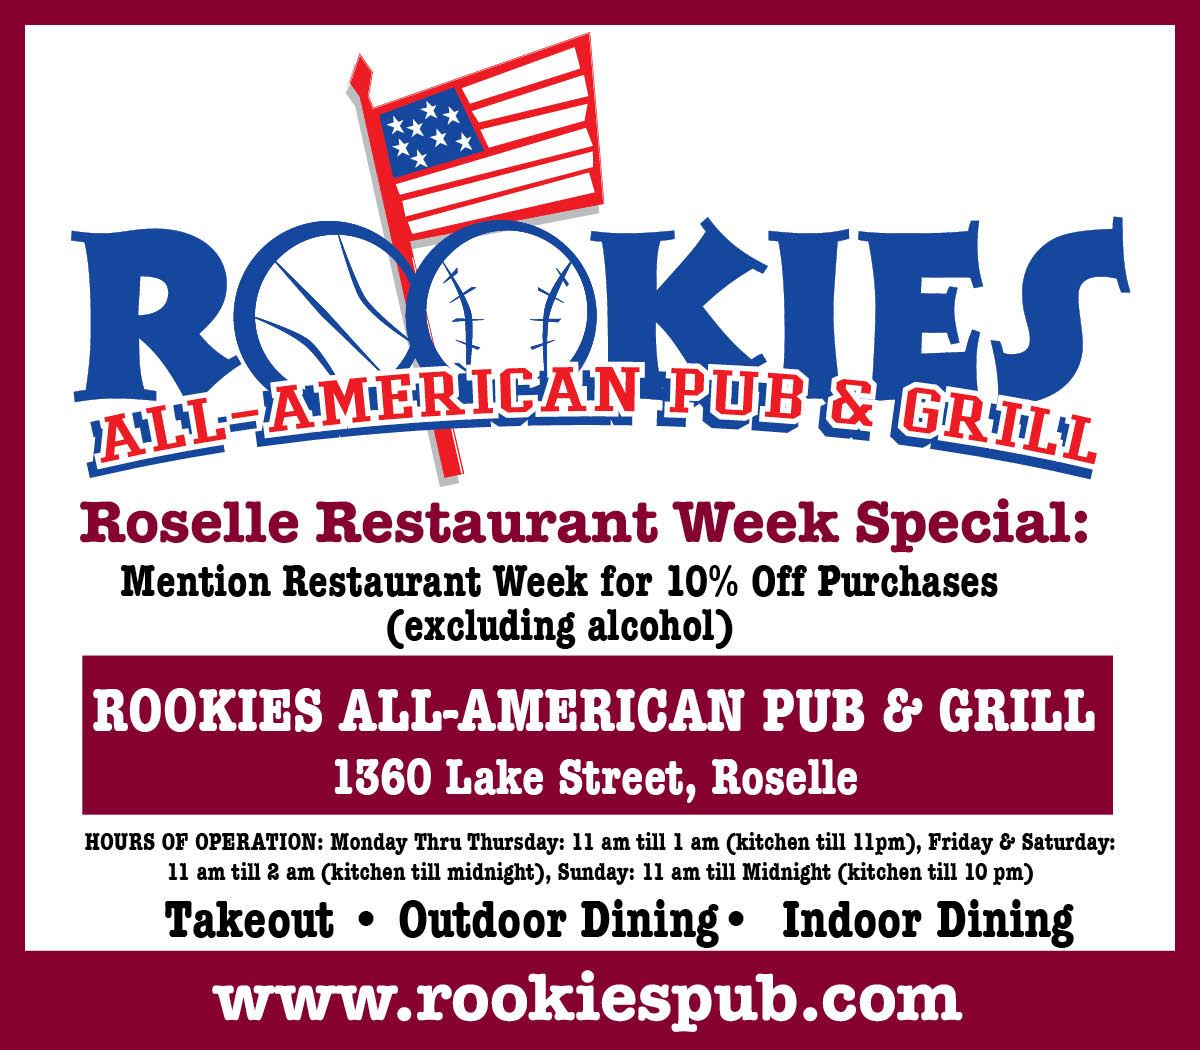 Rookies Opens in new window